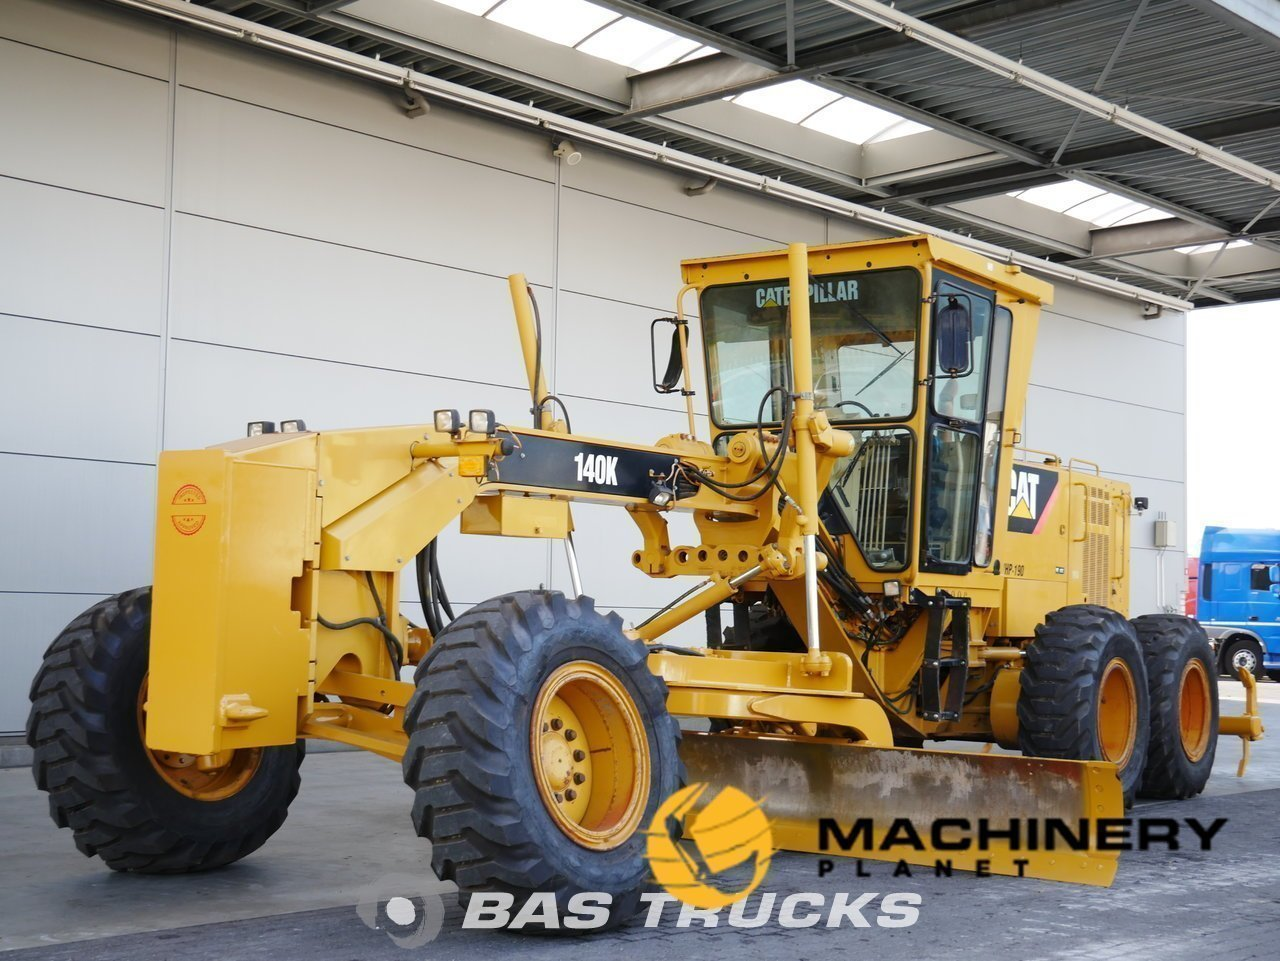 Used-Construction-equipment-Caterpillar-140K-6X4-2011_138136_1-1553941907205_5c9f45933210c-1.jpg